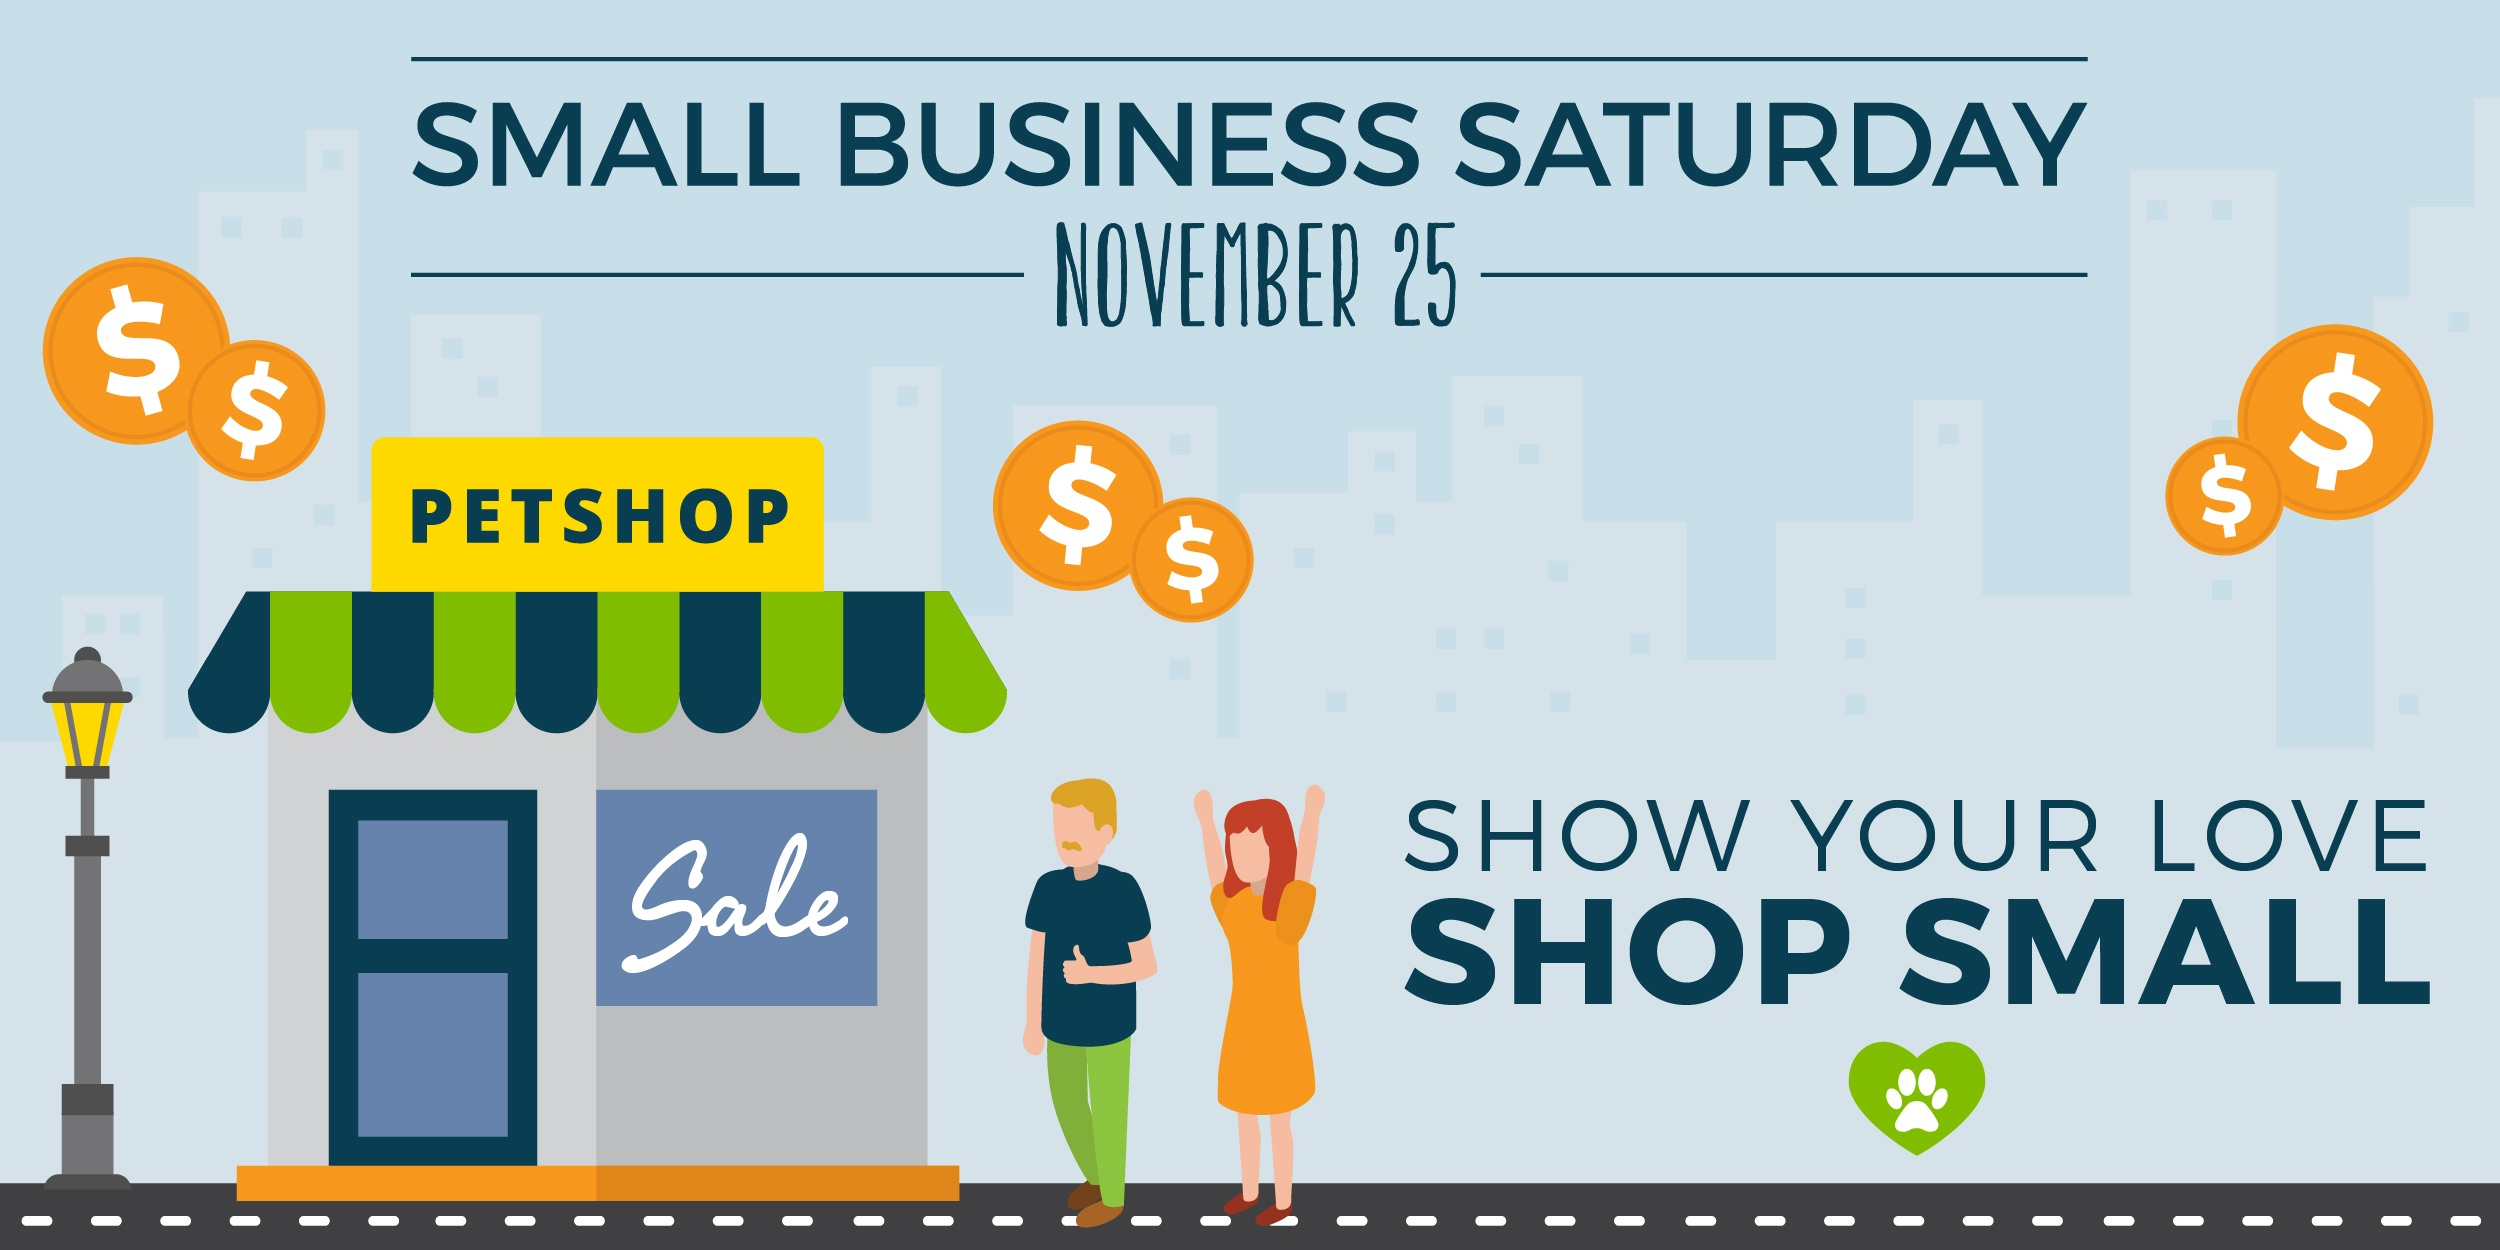 Make the Best of Small Business Saturday